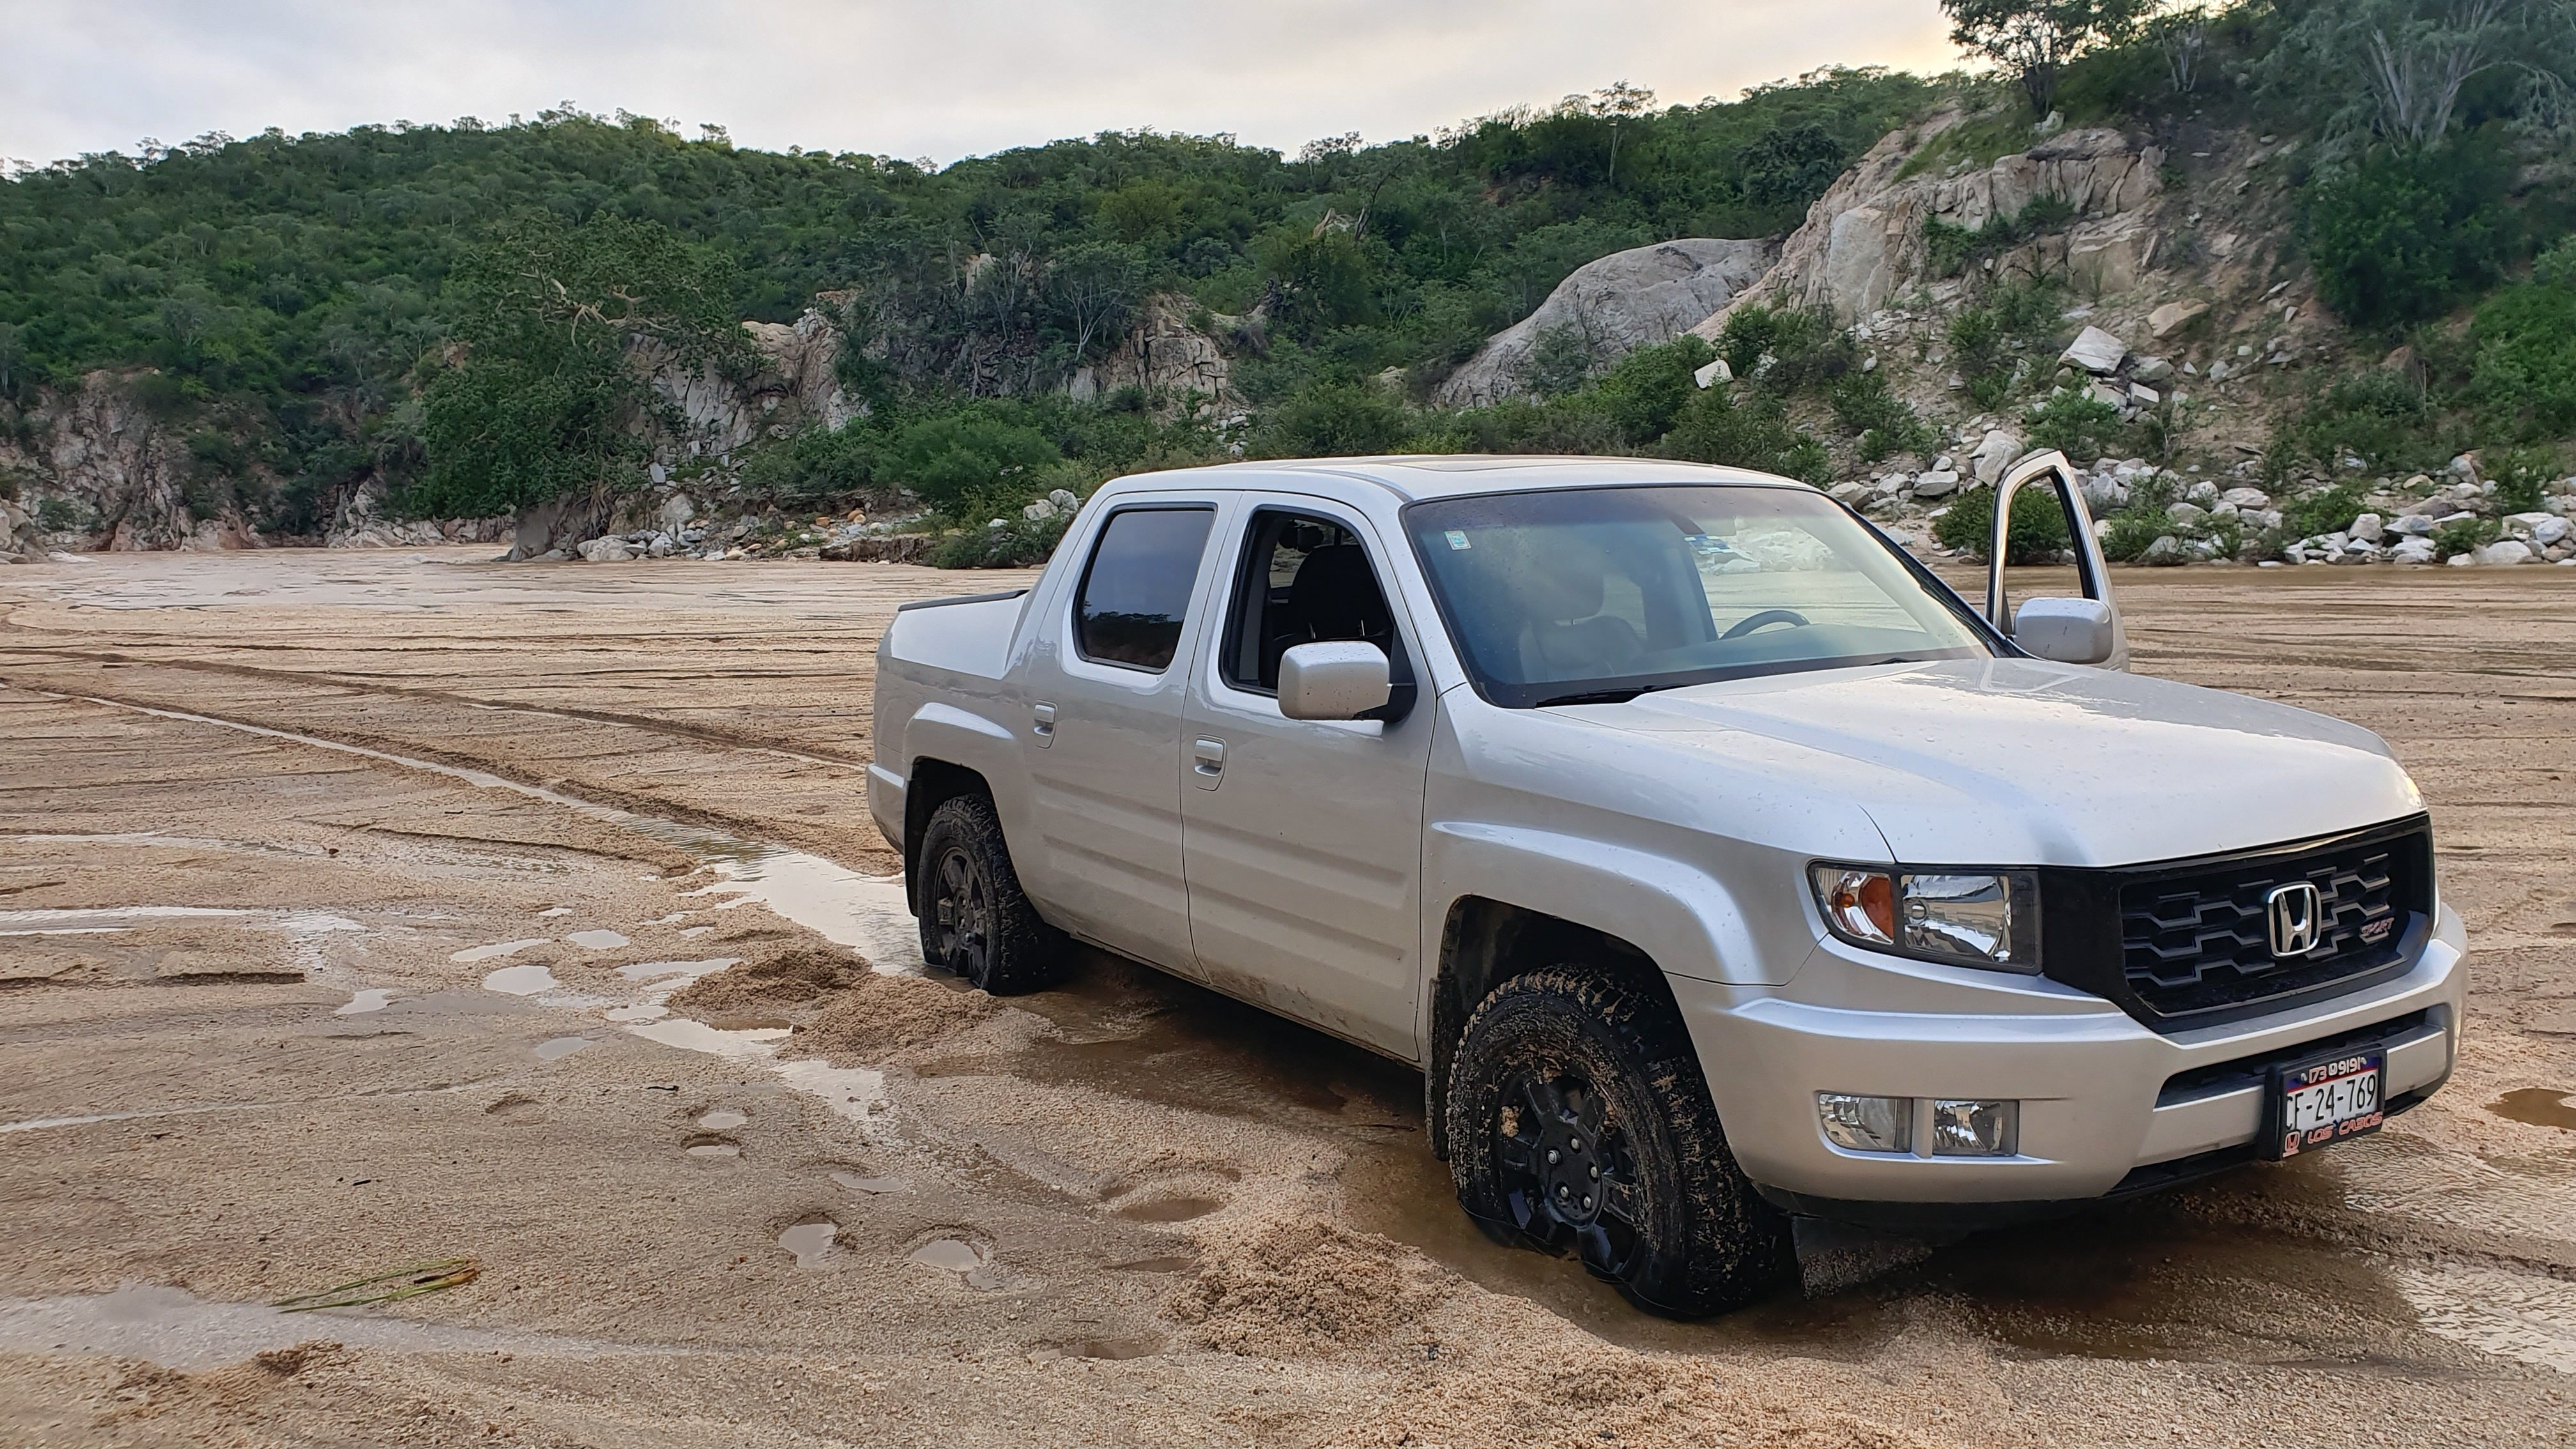 Sand Self Recovery Technique Will It Work For First Gen Ridge Honda Ridgeline Owners Club Forums